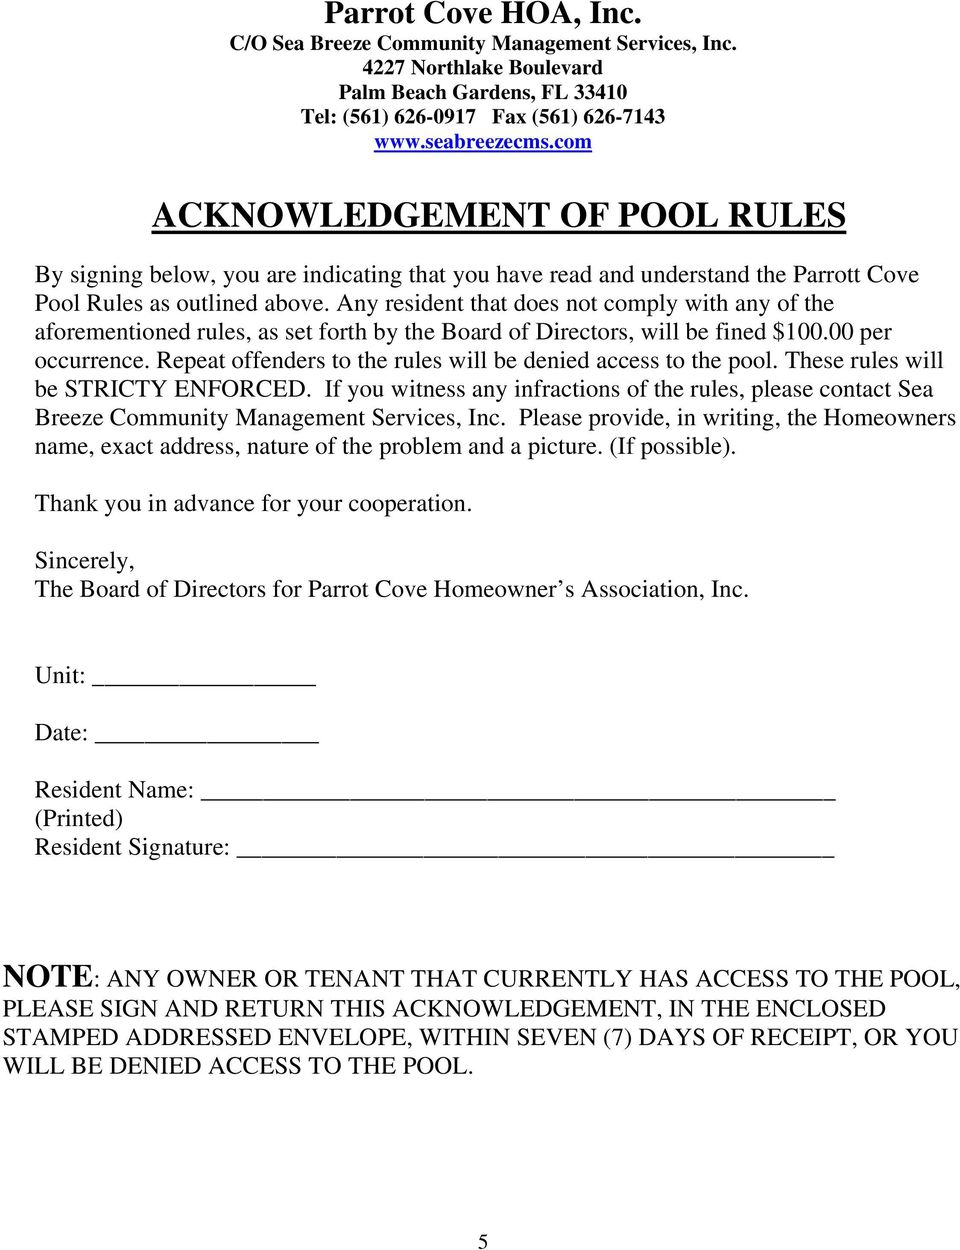 outlined above. Any resident that does not comply with any of the aforementioned rules, as set forth by the Board of Directors, will be fined $100.00 per occurrence.